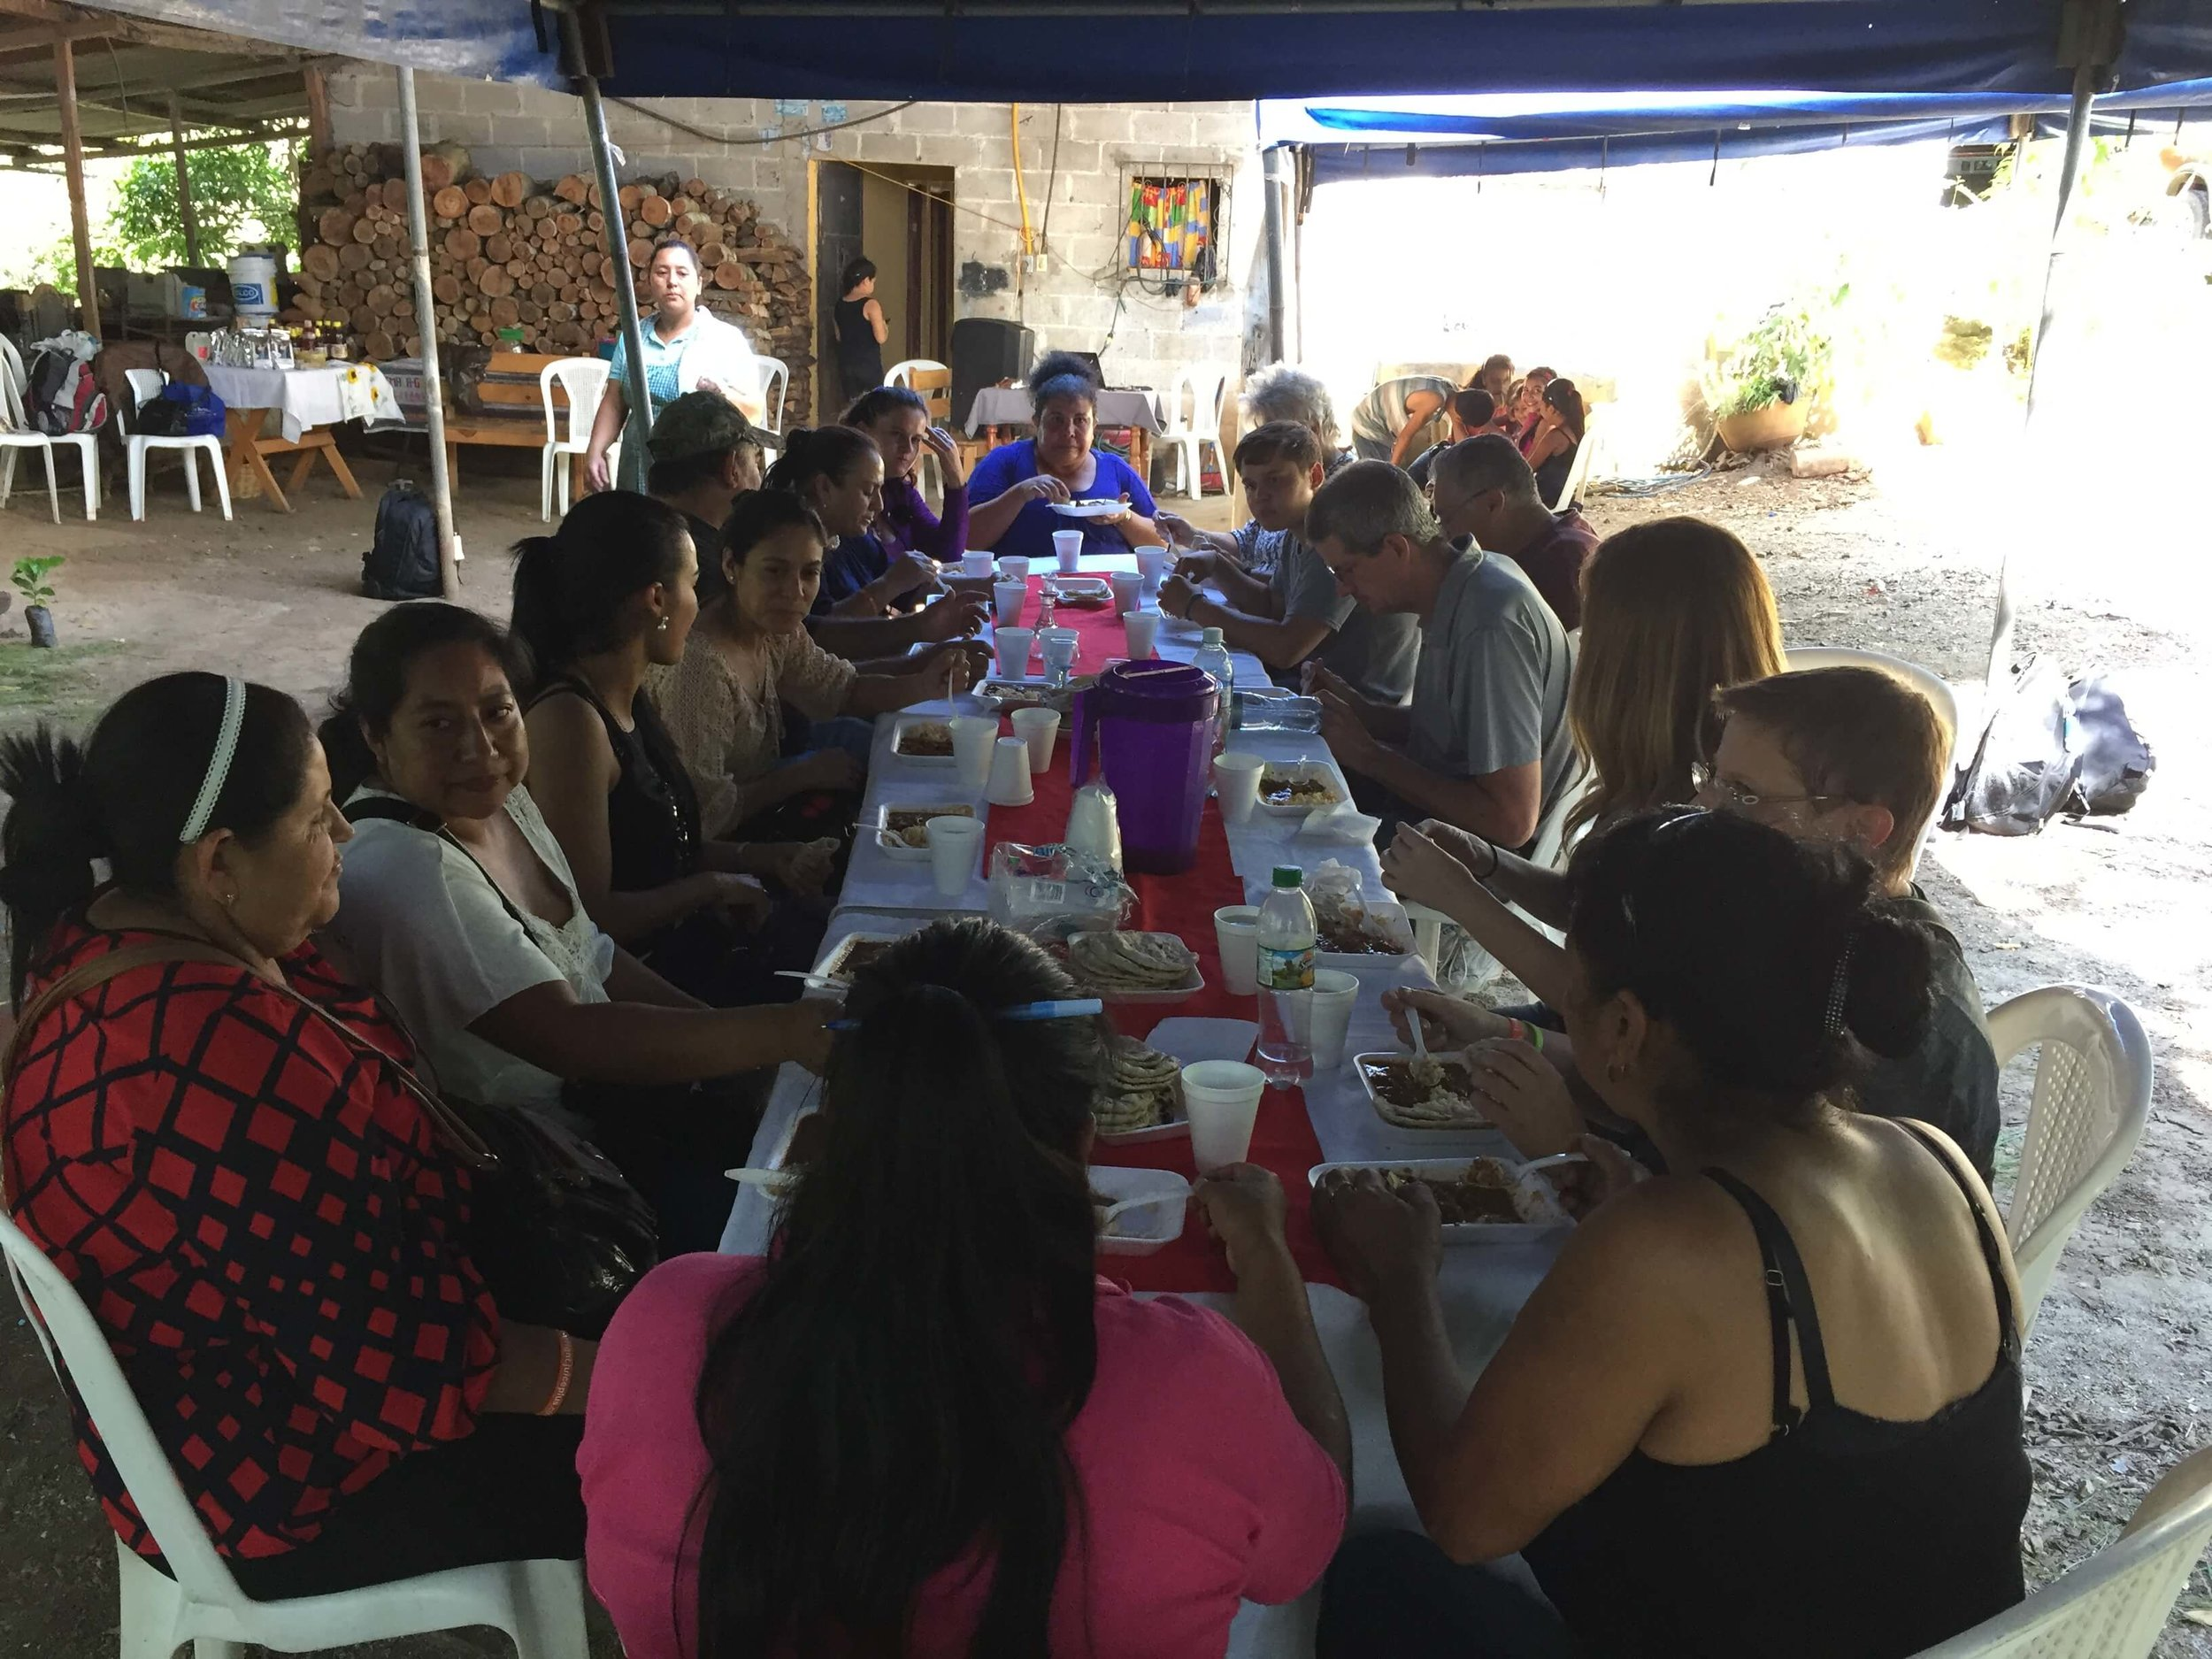 The group in San Jose Acatempa eating together